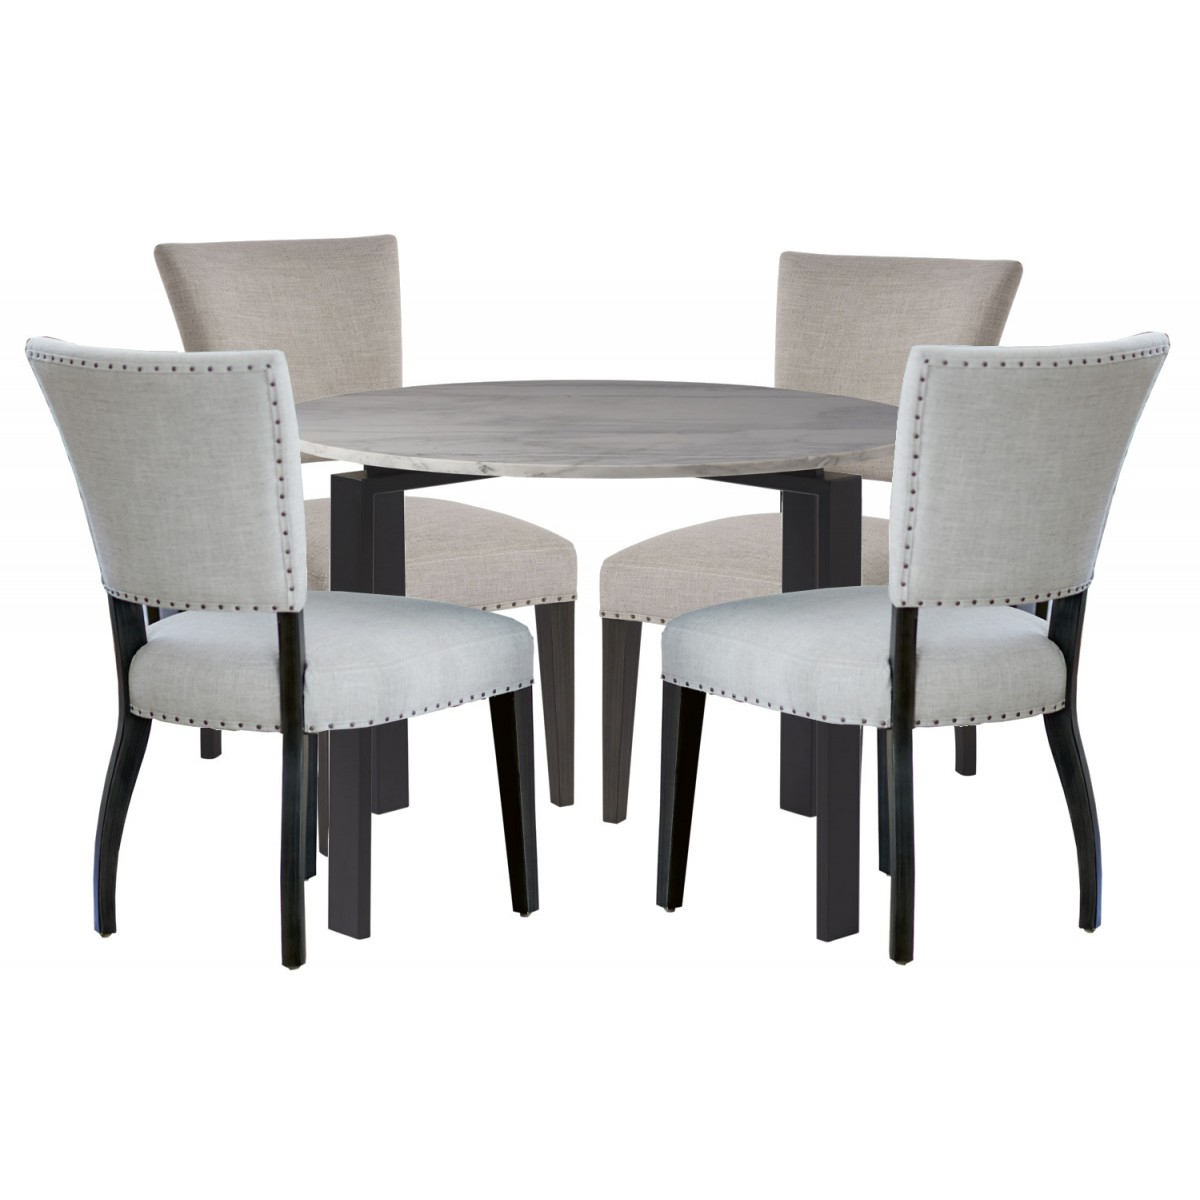 Dining Tables With White Marble Top for Popular Universal Furniture Spaces Marshall 5Pc Round Dining Table Set- White  Marble Top#732